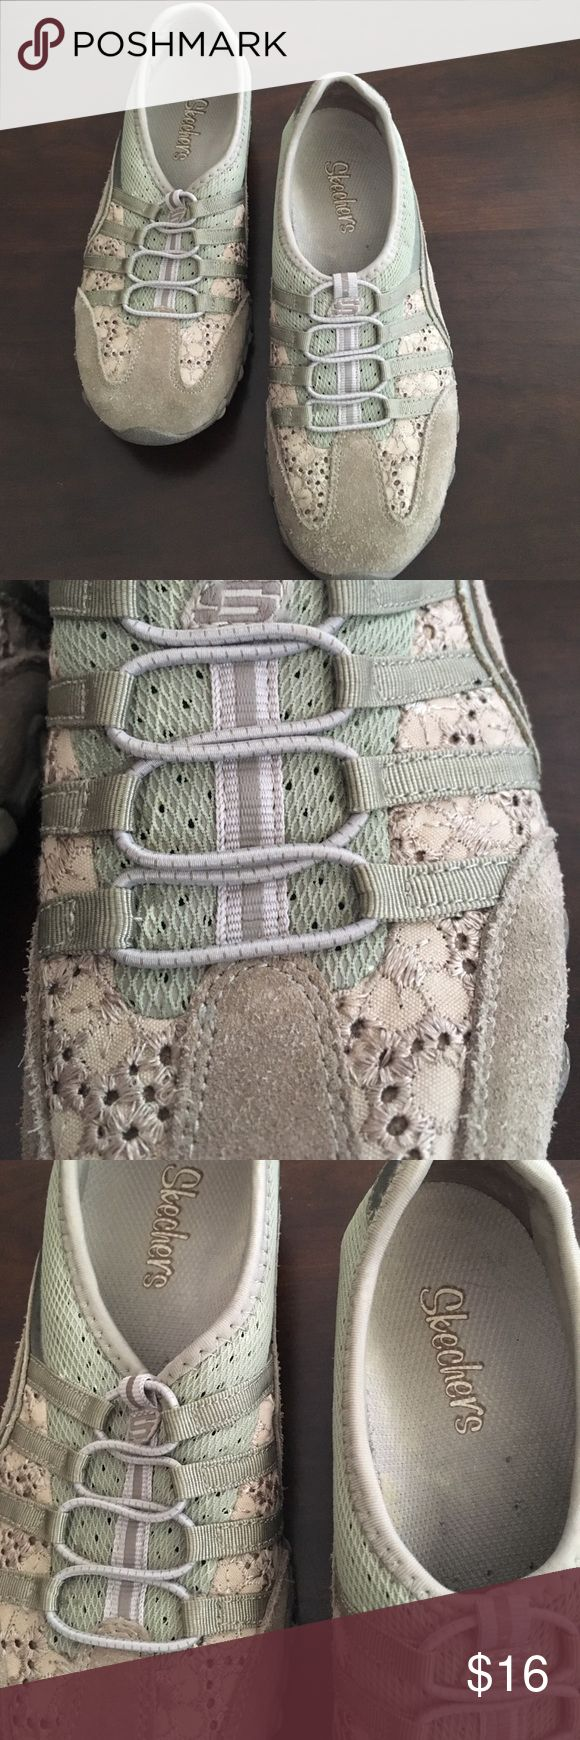 Skechers Slip On Sneakers Tan, cream and olive green colored skechers slip on sneakers, size 6, and in great condition! Skechers Shoes Sneakers